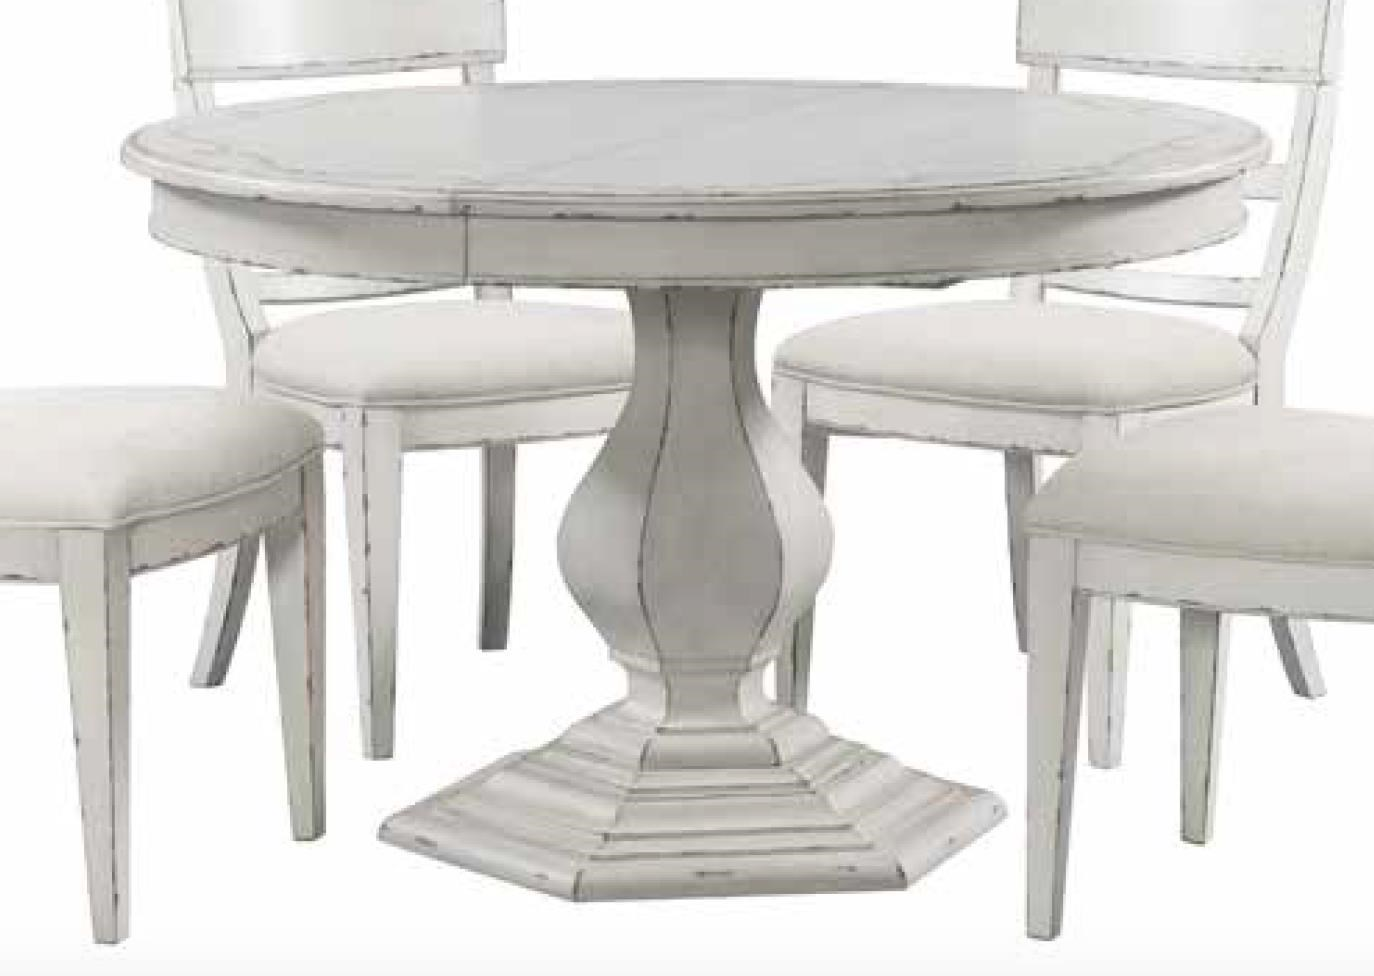 Picture of: Riverside Furniture Bella Grigio Round Dining Table With Stencil Top Reeds Furniture Kitchen Tables